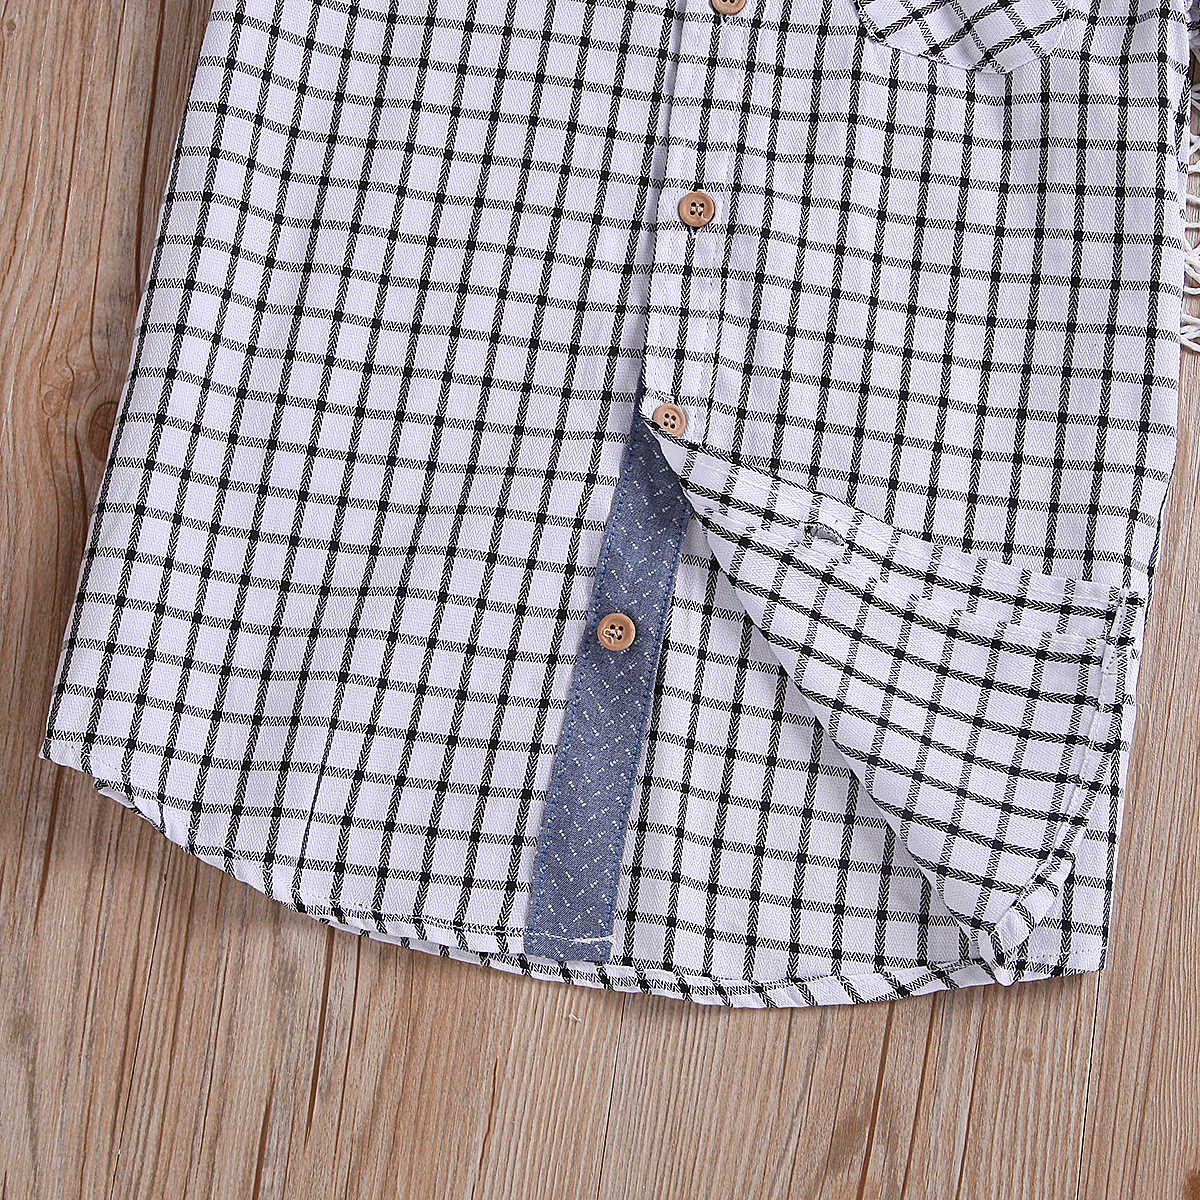 2019 Summer Kids Baby Boys Plaid Tops Shirts School Polo Shirt Button Blouse Clothes Cotton Children's Clothing 3-10Y